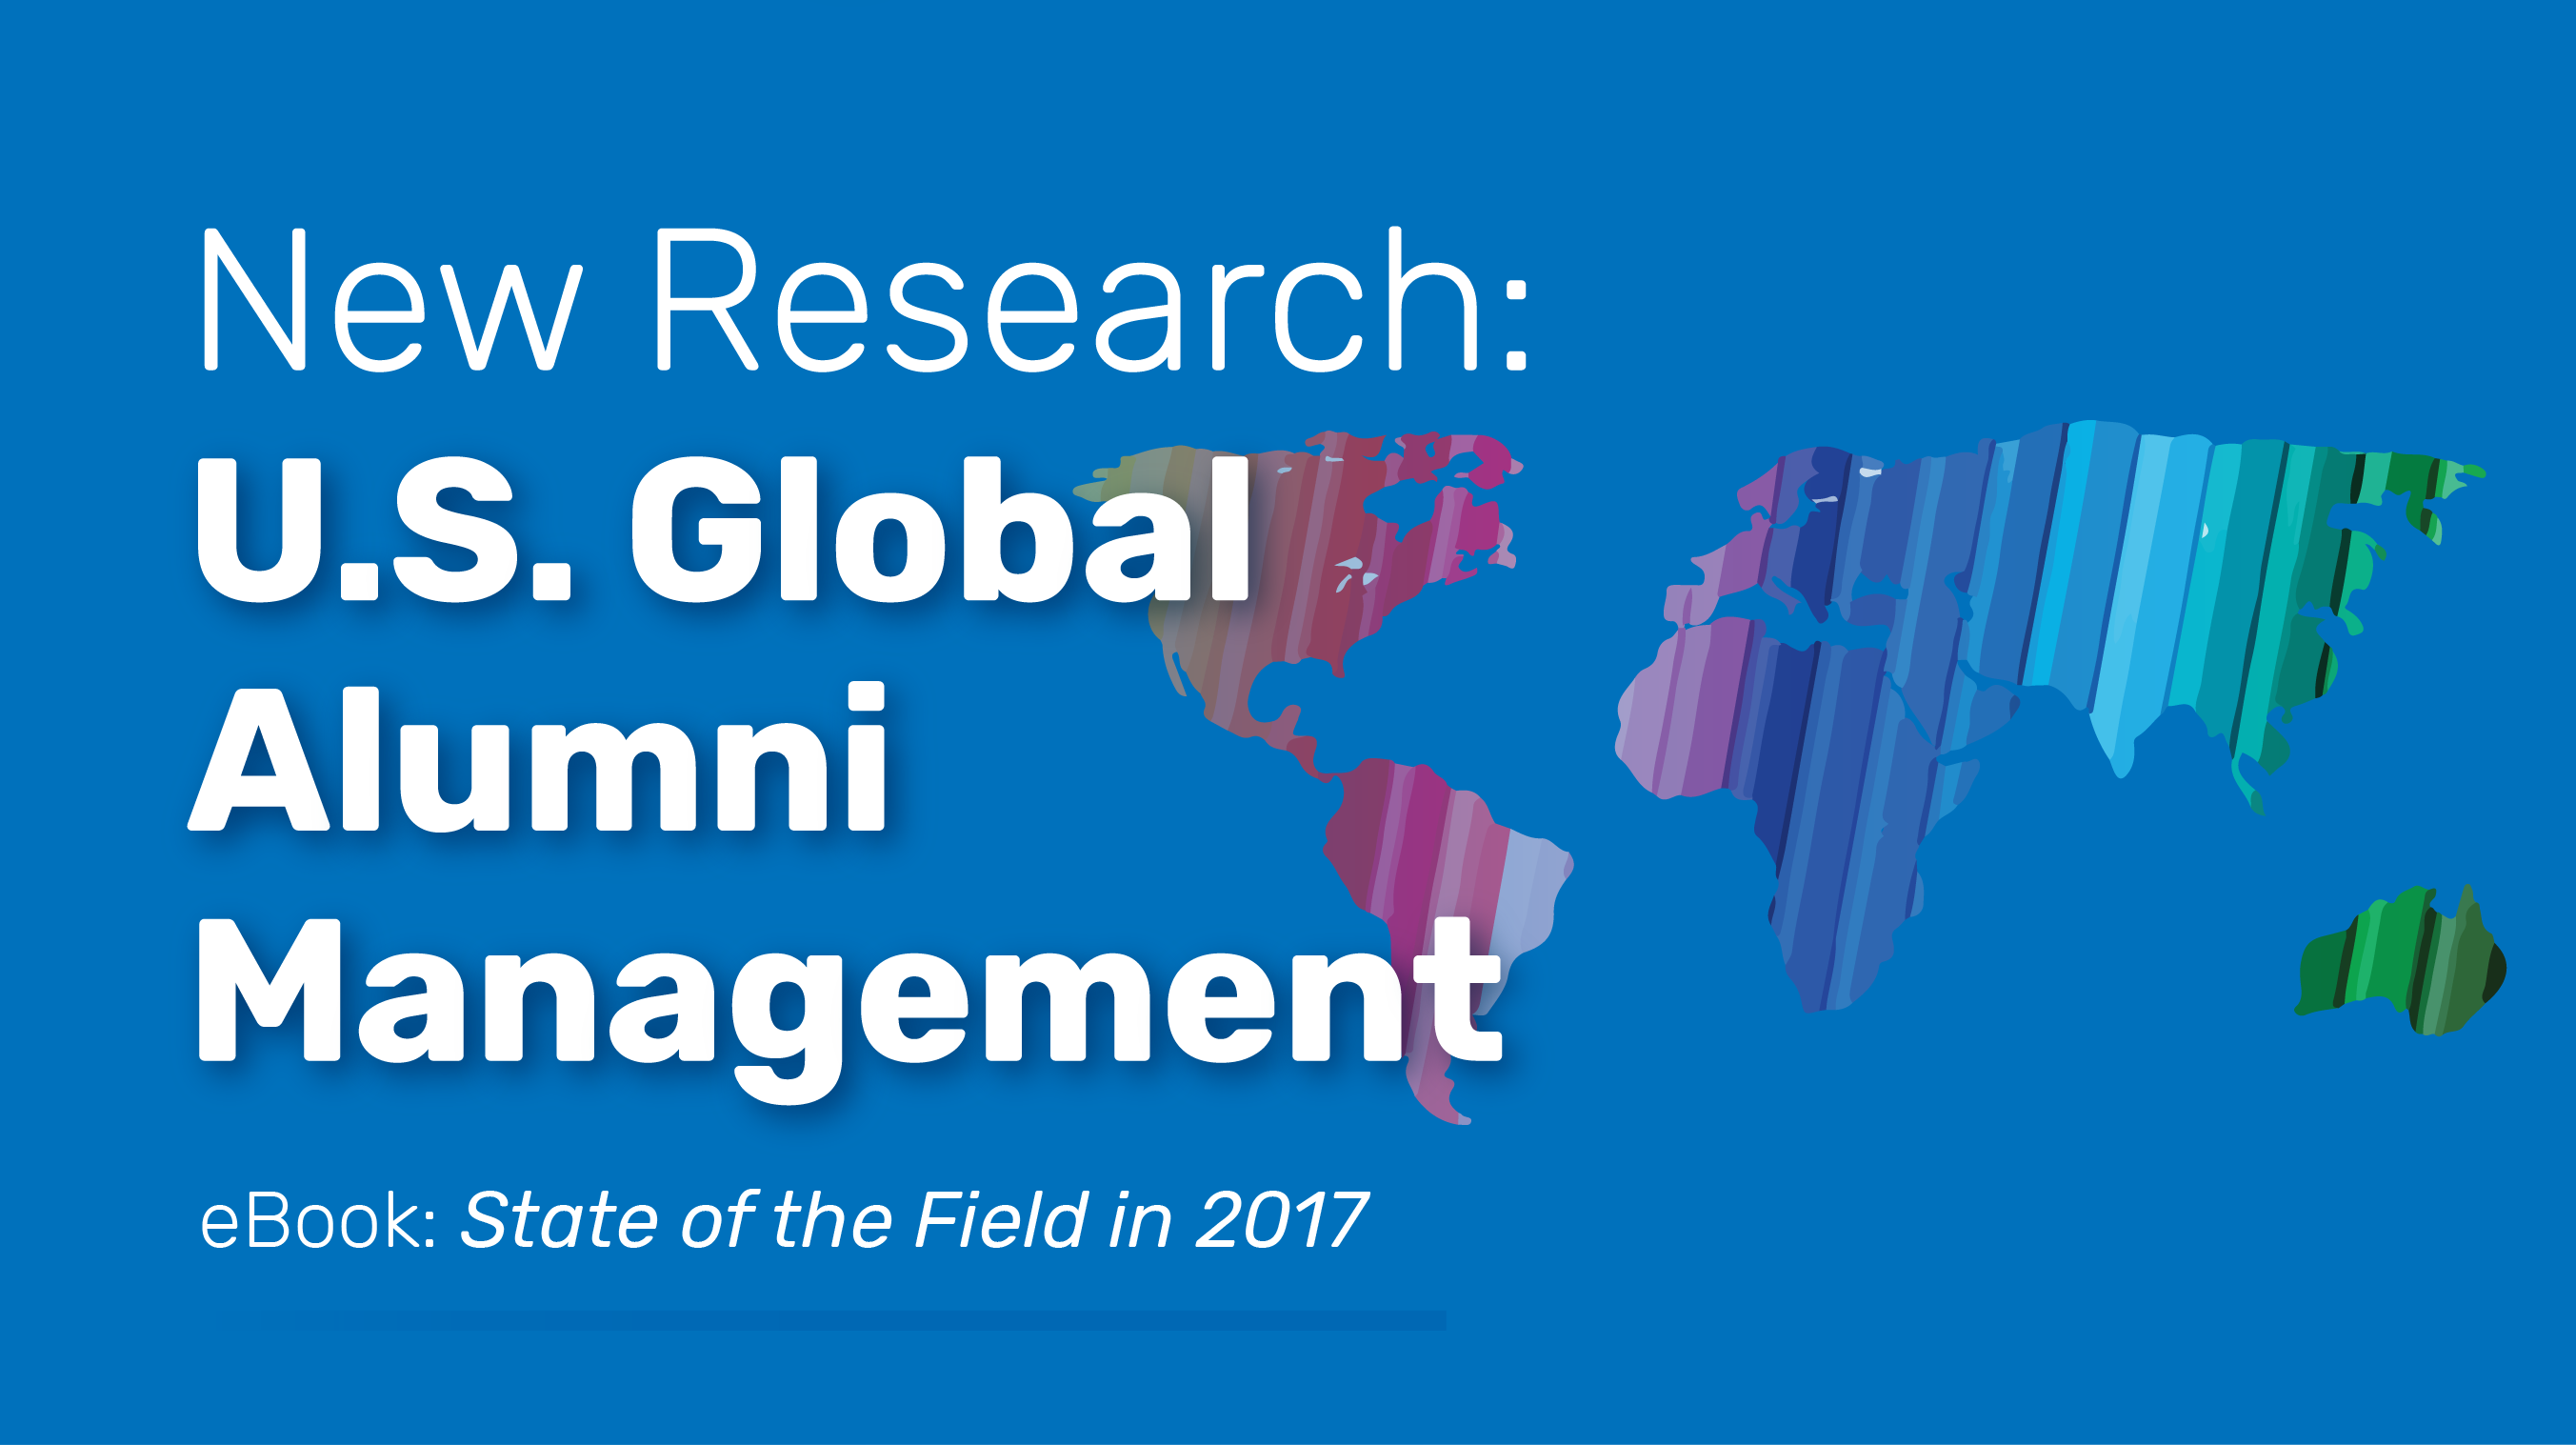 U.S. Global Alumni Management